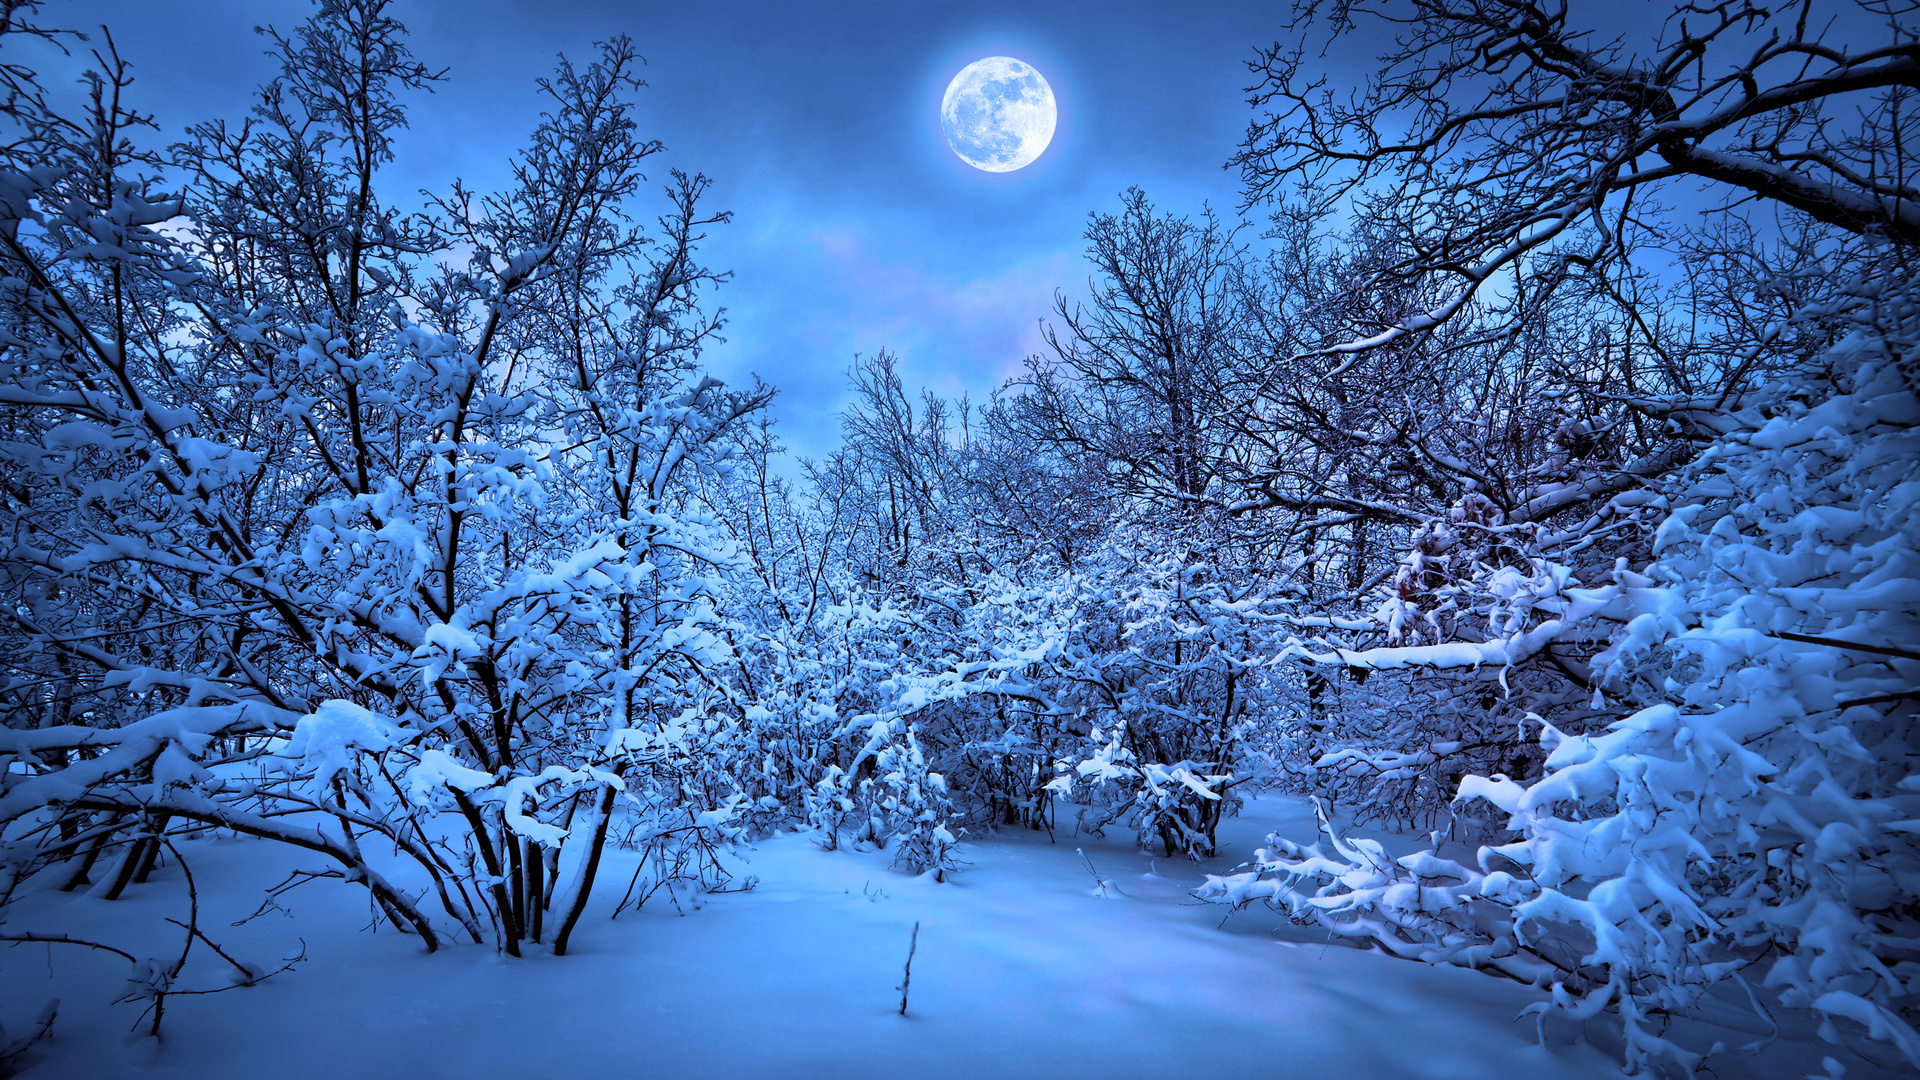 forest moon night snow winter f wallpaper background 1920x1080